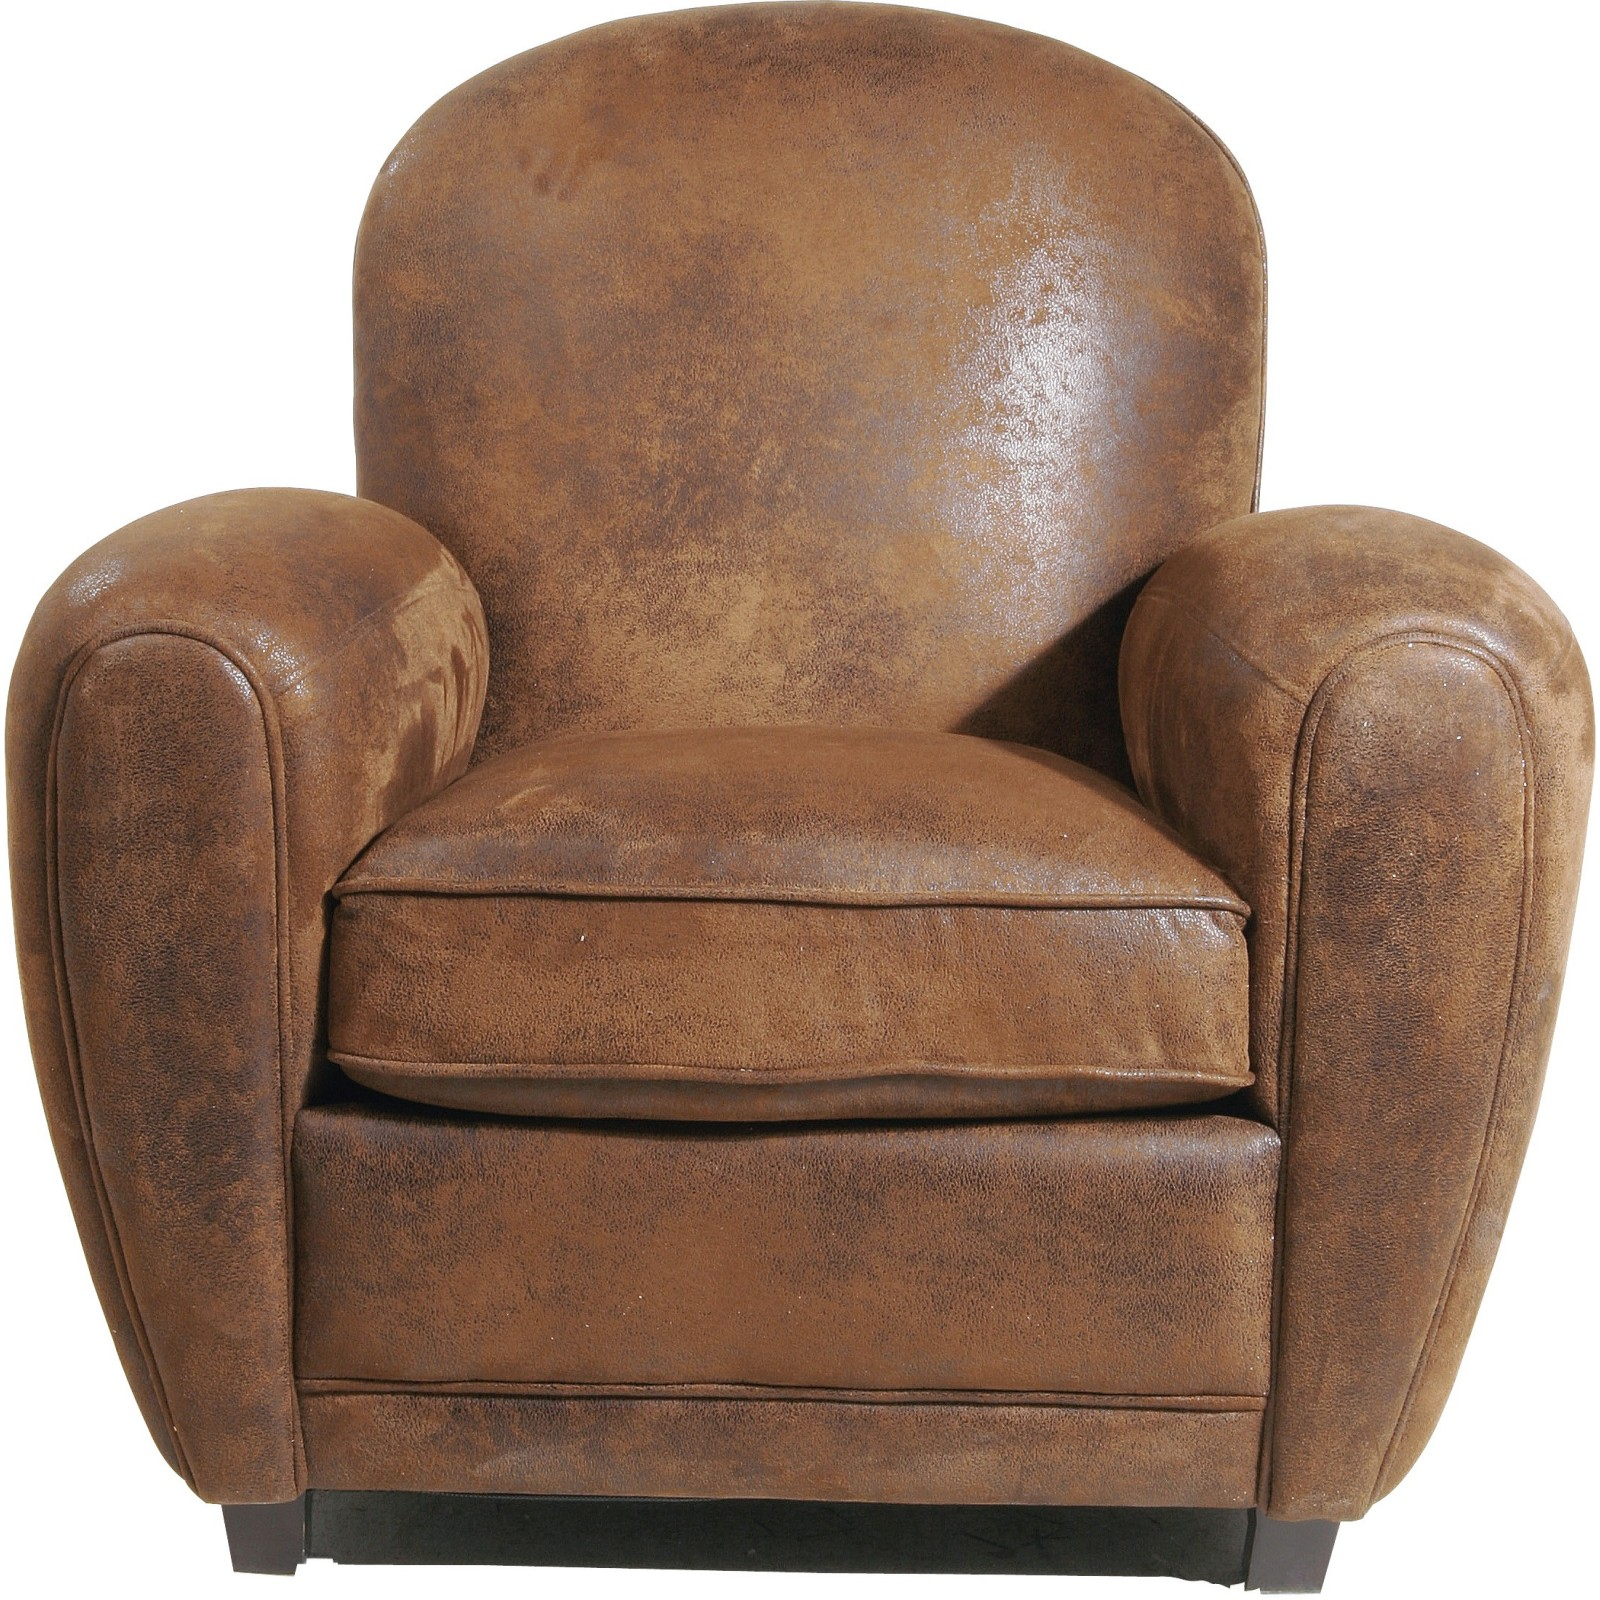 fauteuil club vintage marron round kare design. Black Bedroom Furniture Sets. Home Design Ideas